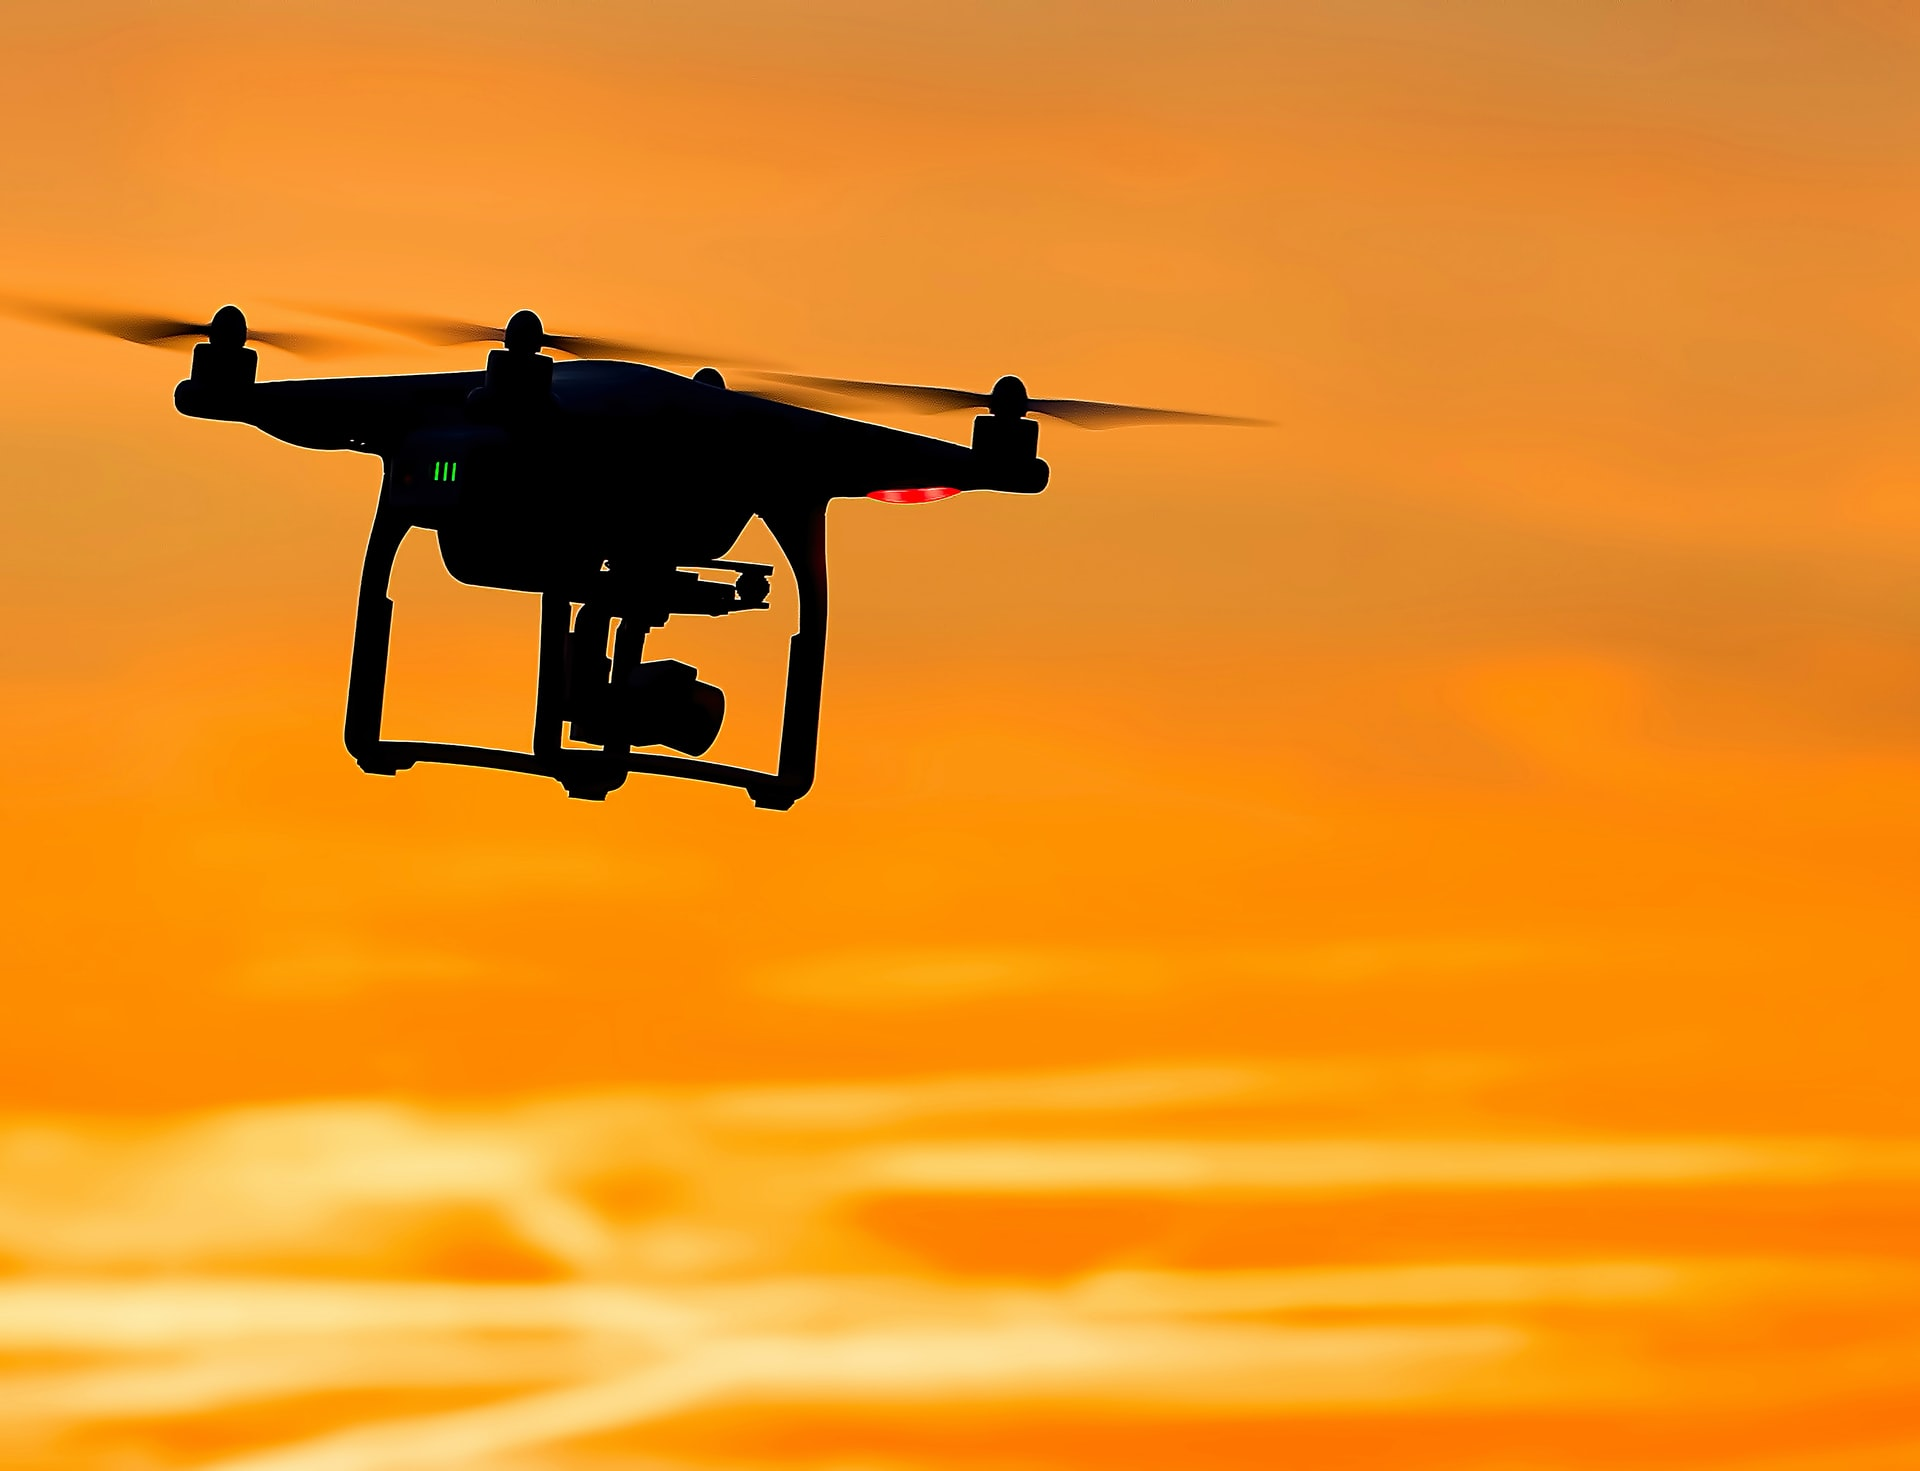 Best Used Drones for Photography